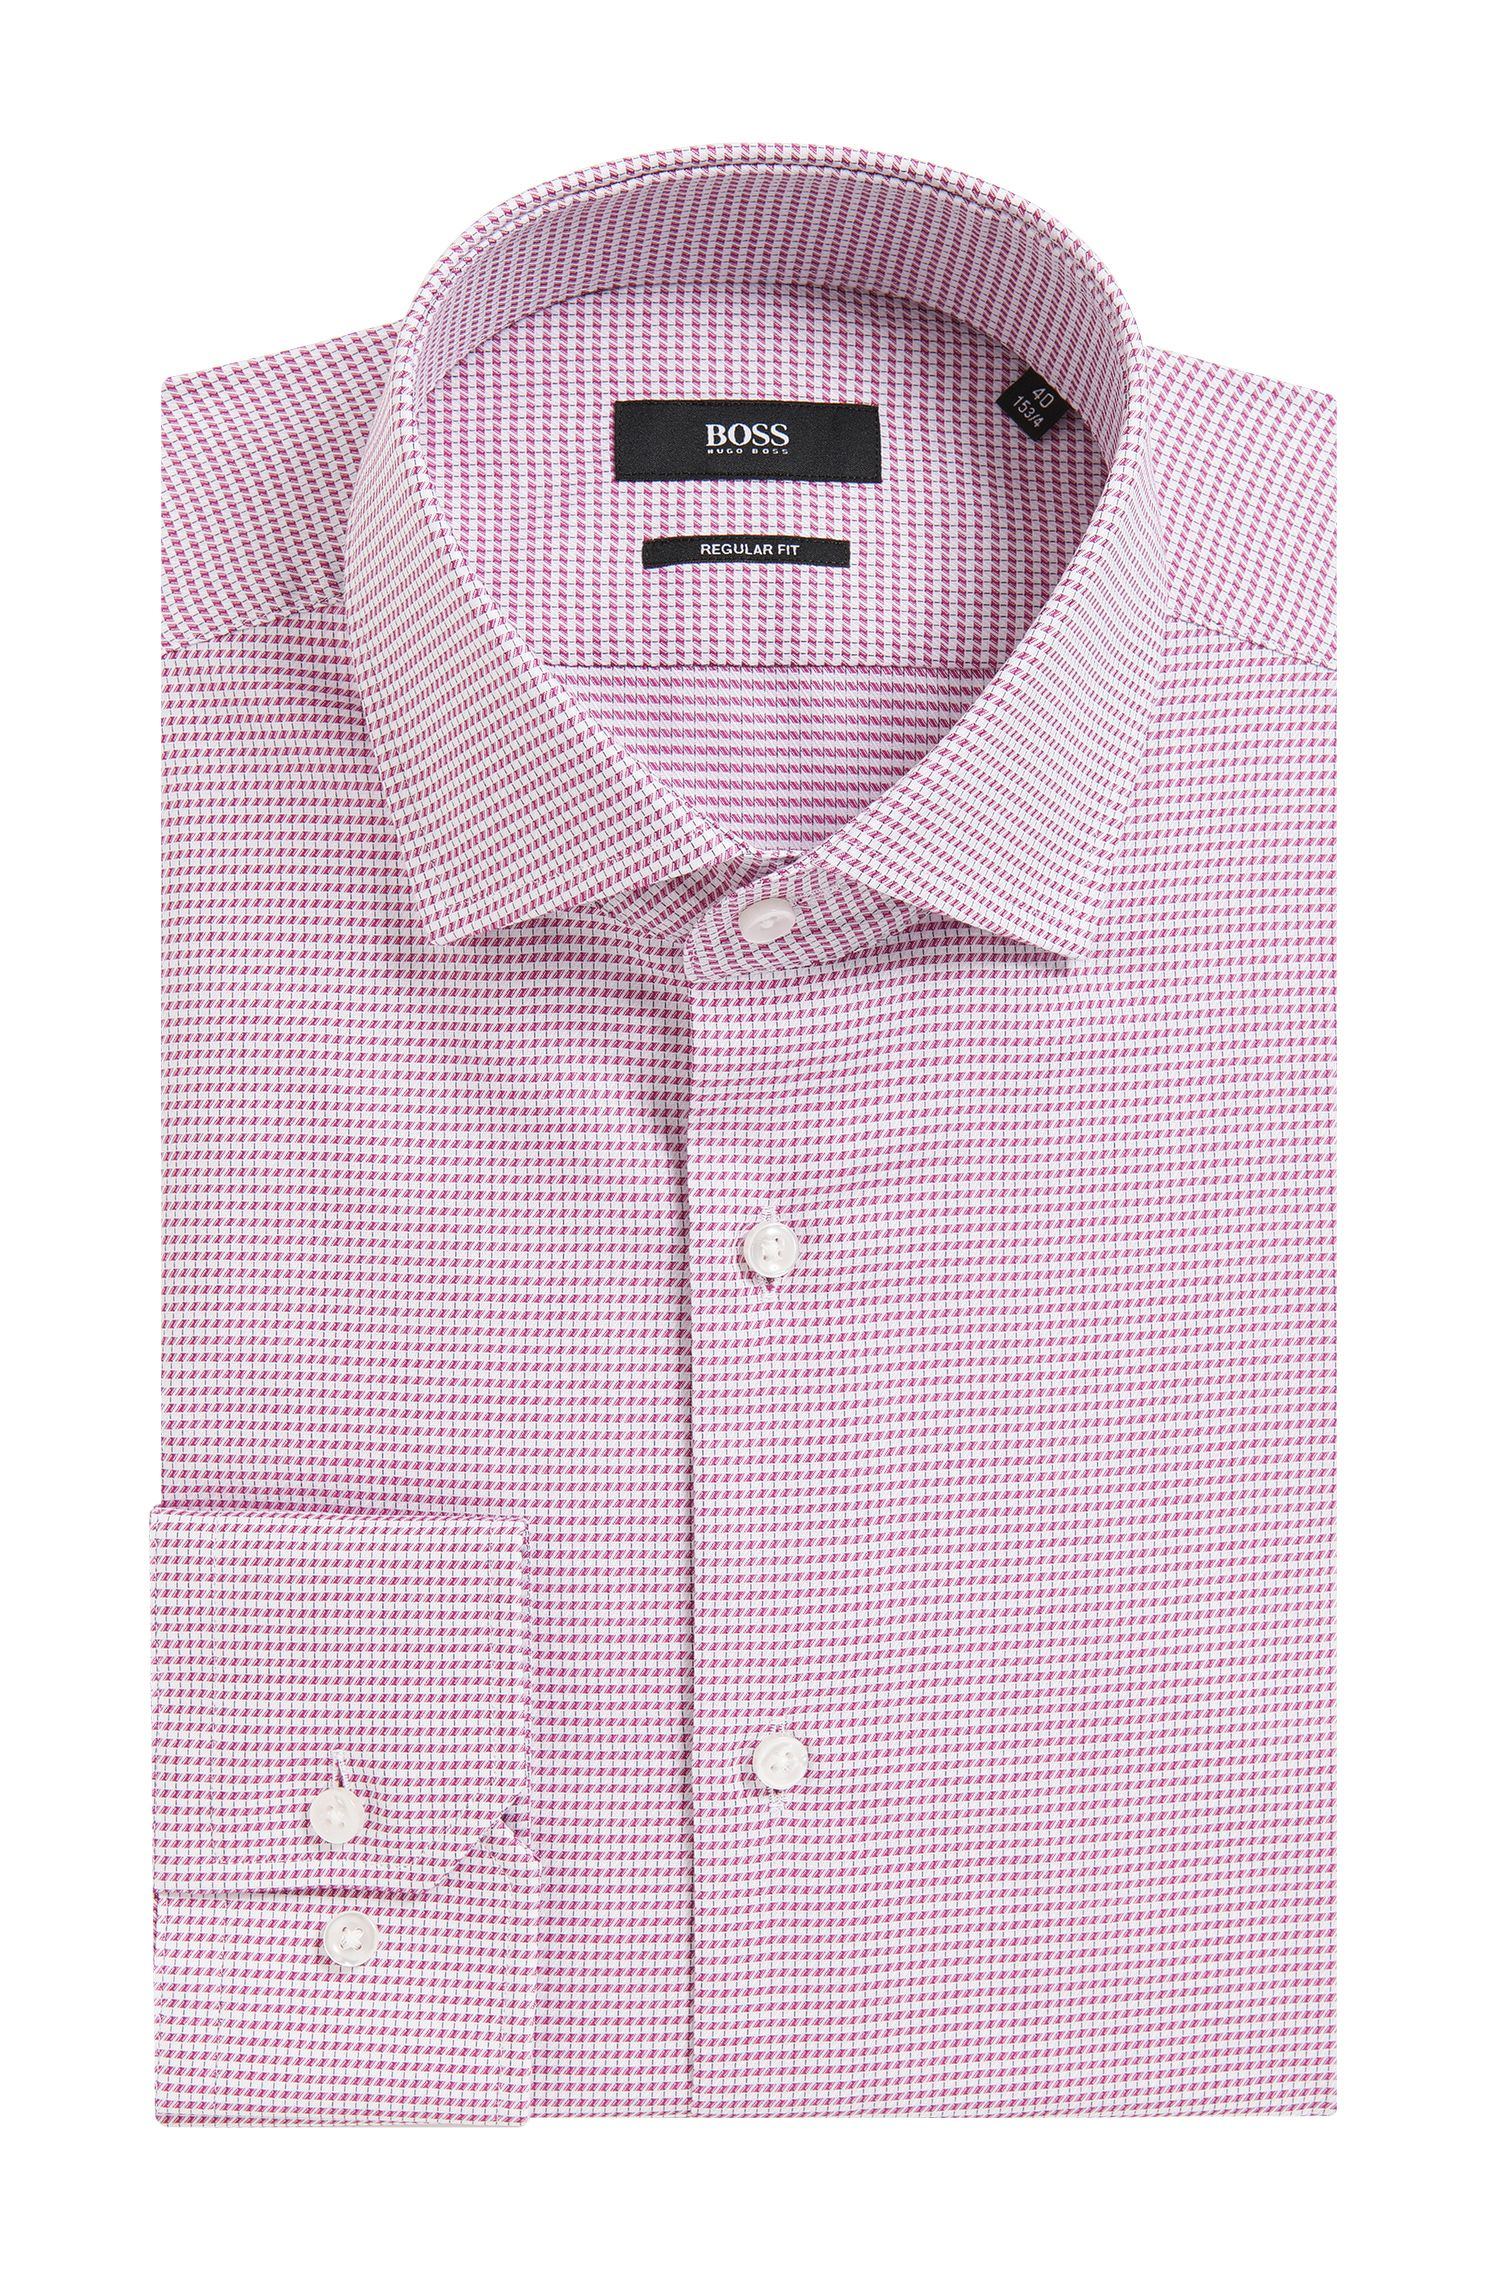 Geometric Check Cotton Dress Shirt, Regular Fit | Gordon